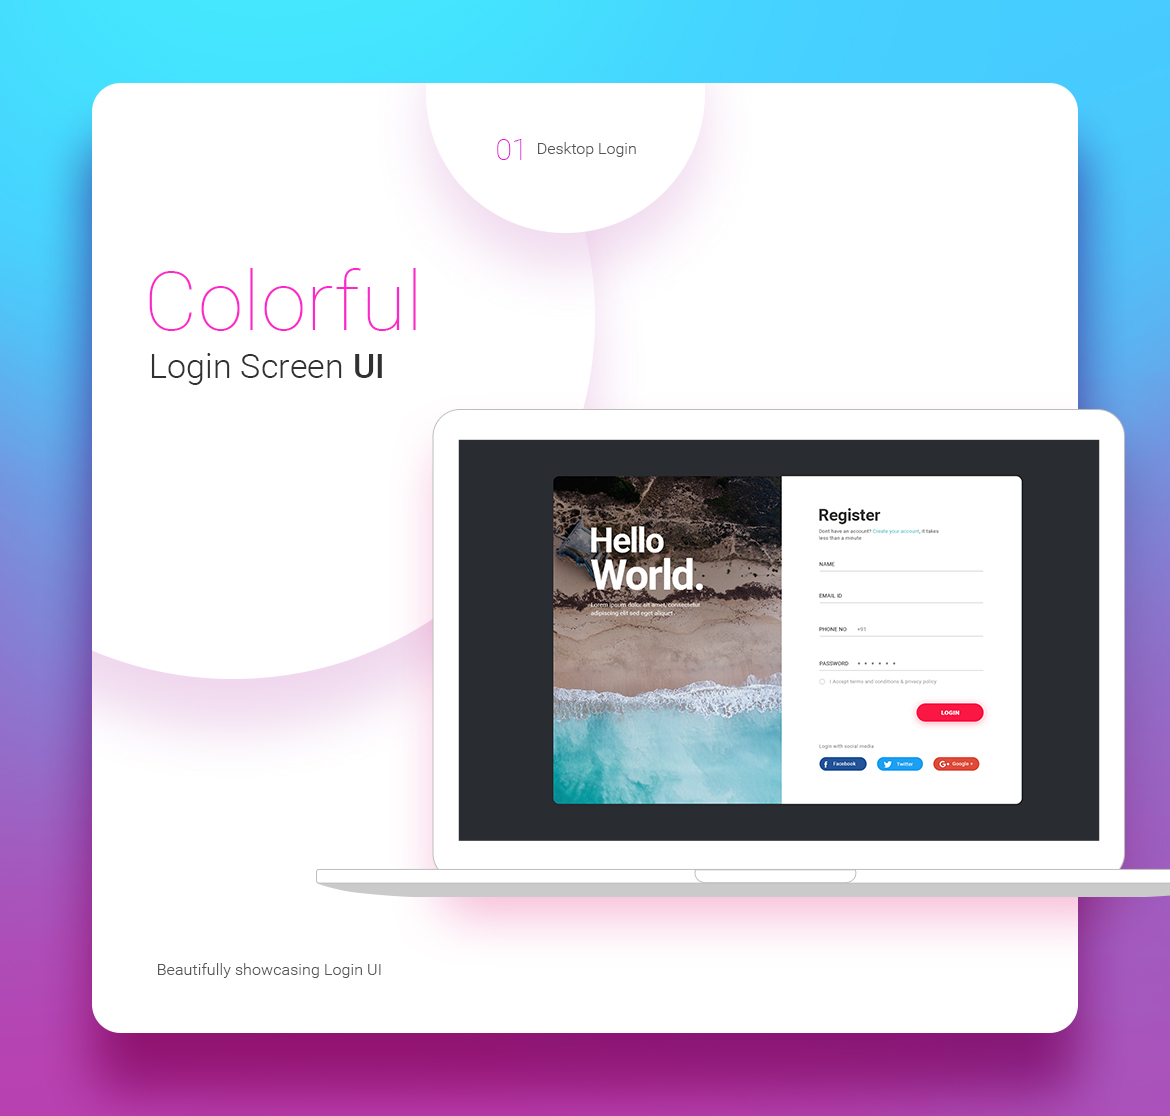 Free Login Screens UI Kit for Photoshop - Colorful Desktop View